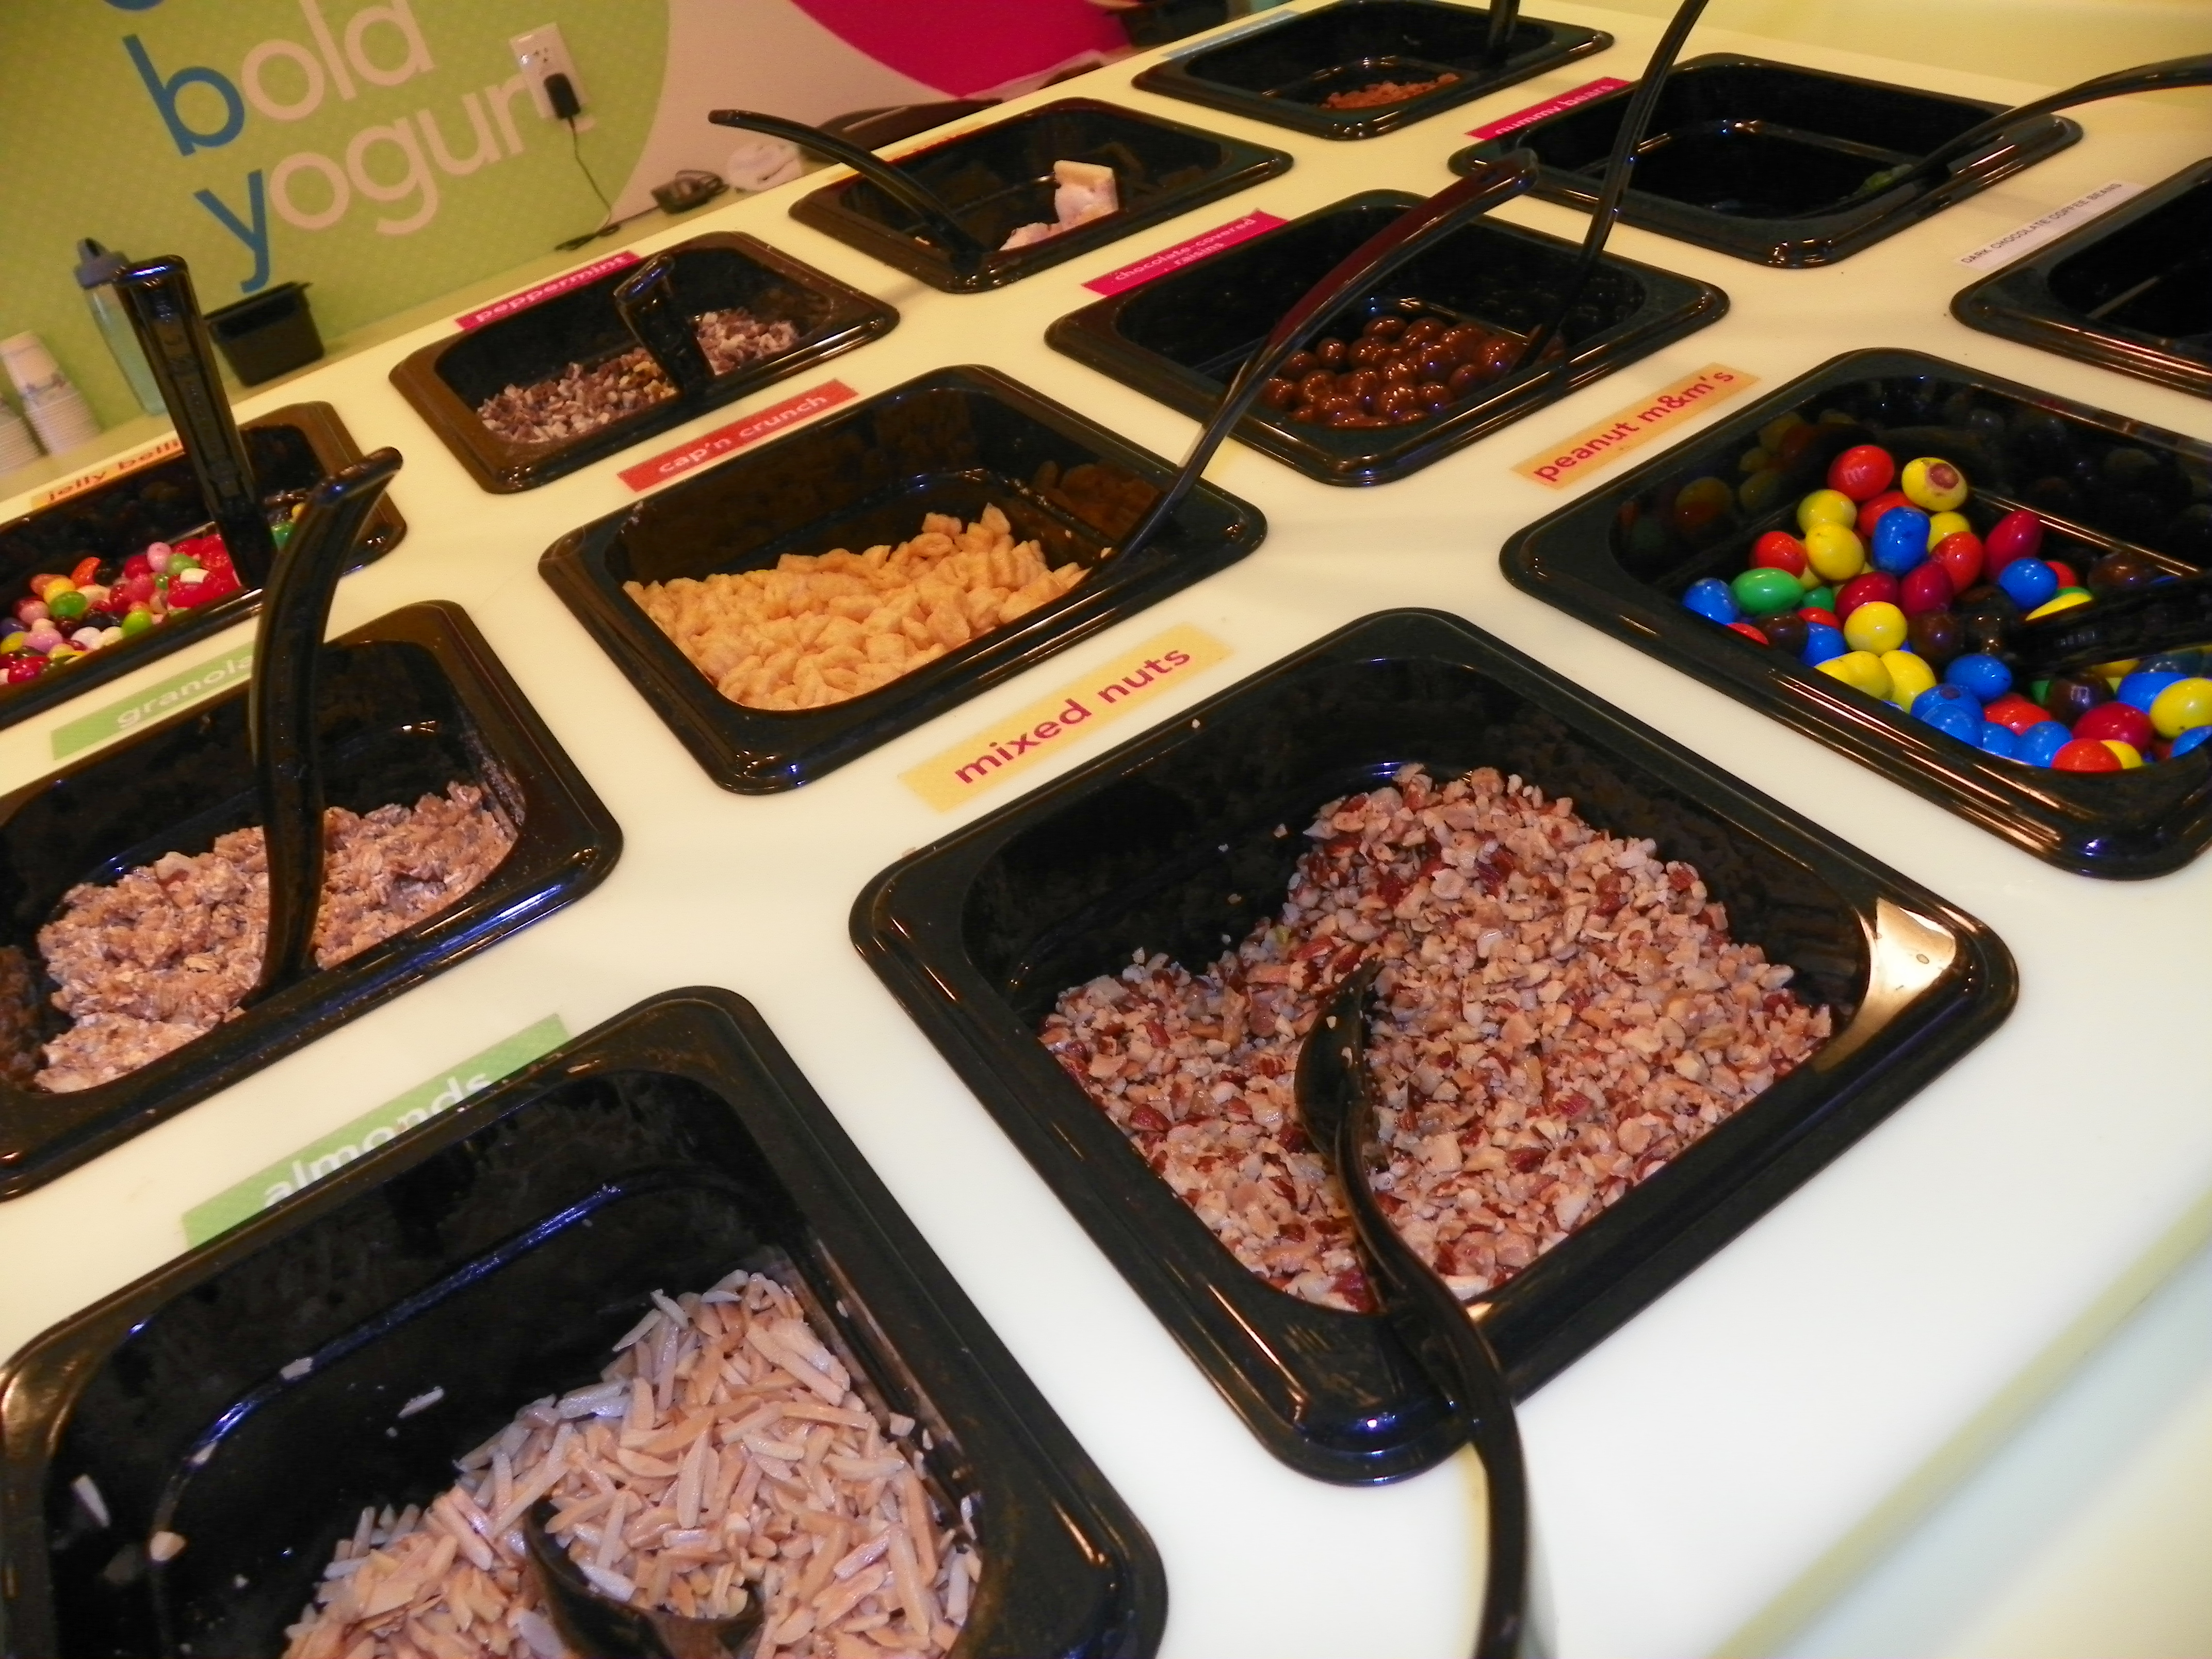 Tcby Of Grenwood Village Wineglasslipper A Day In The Life